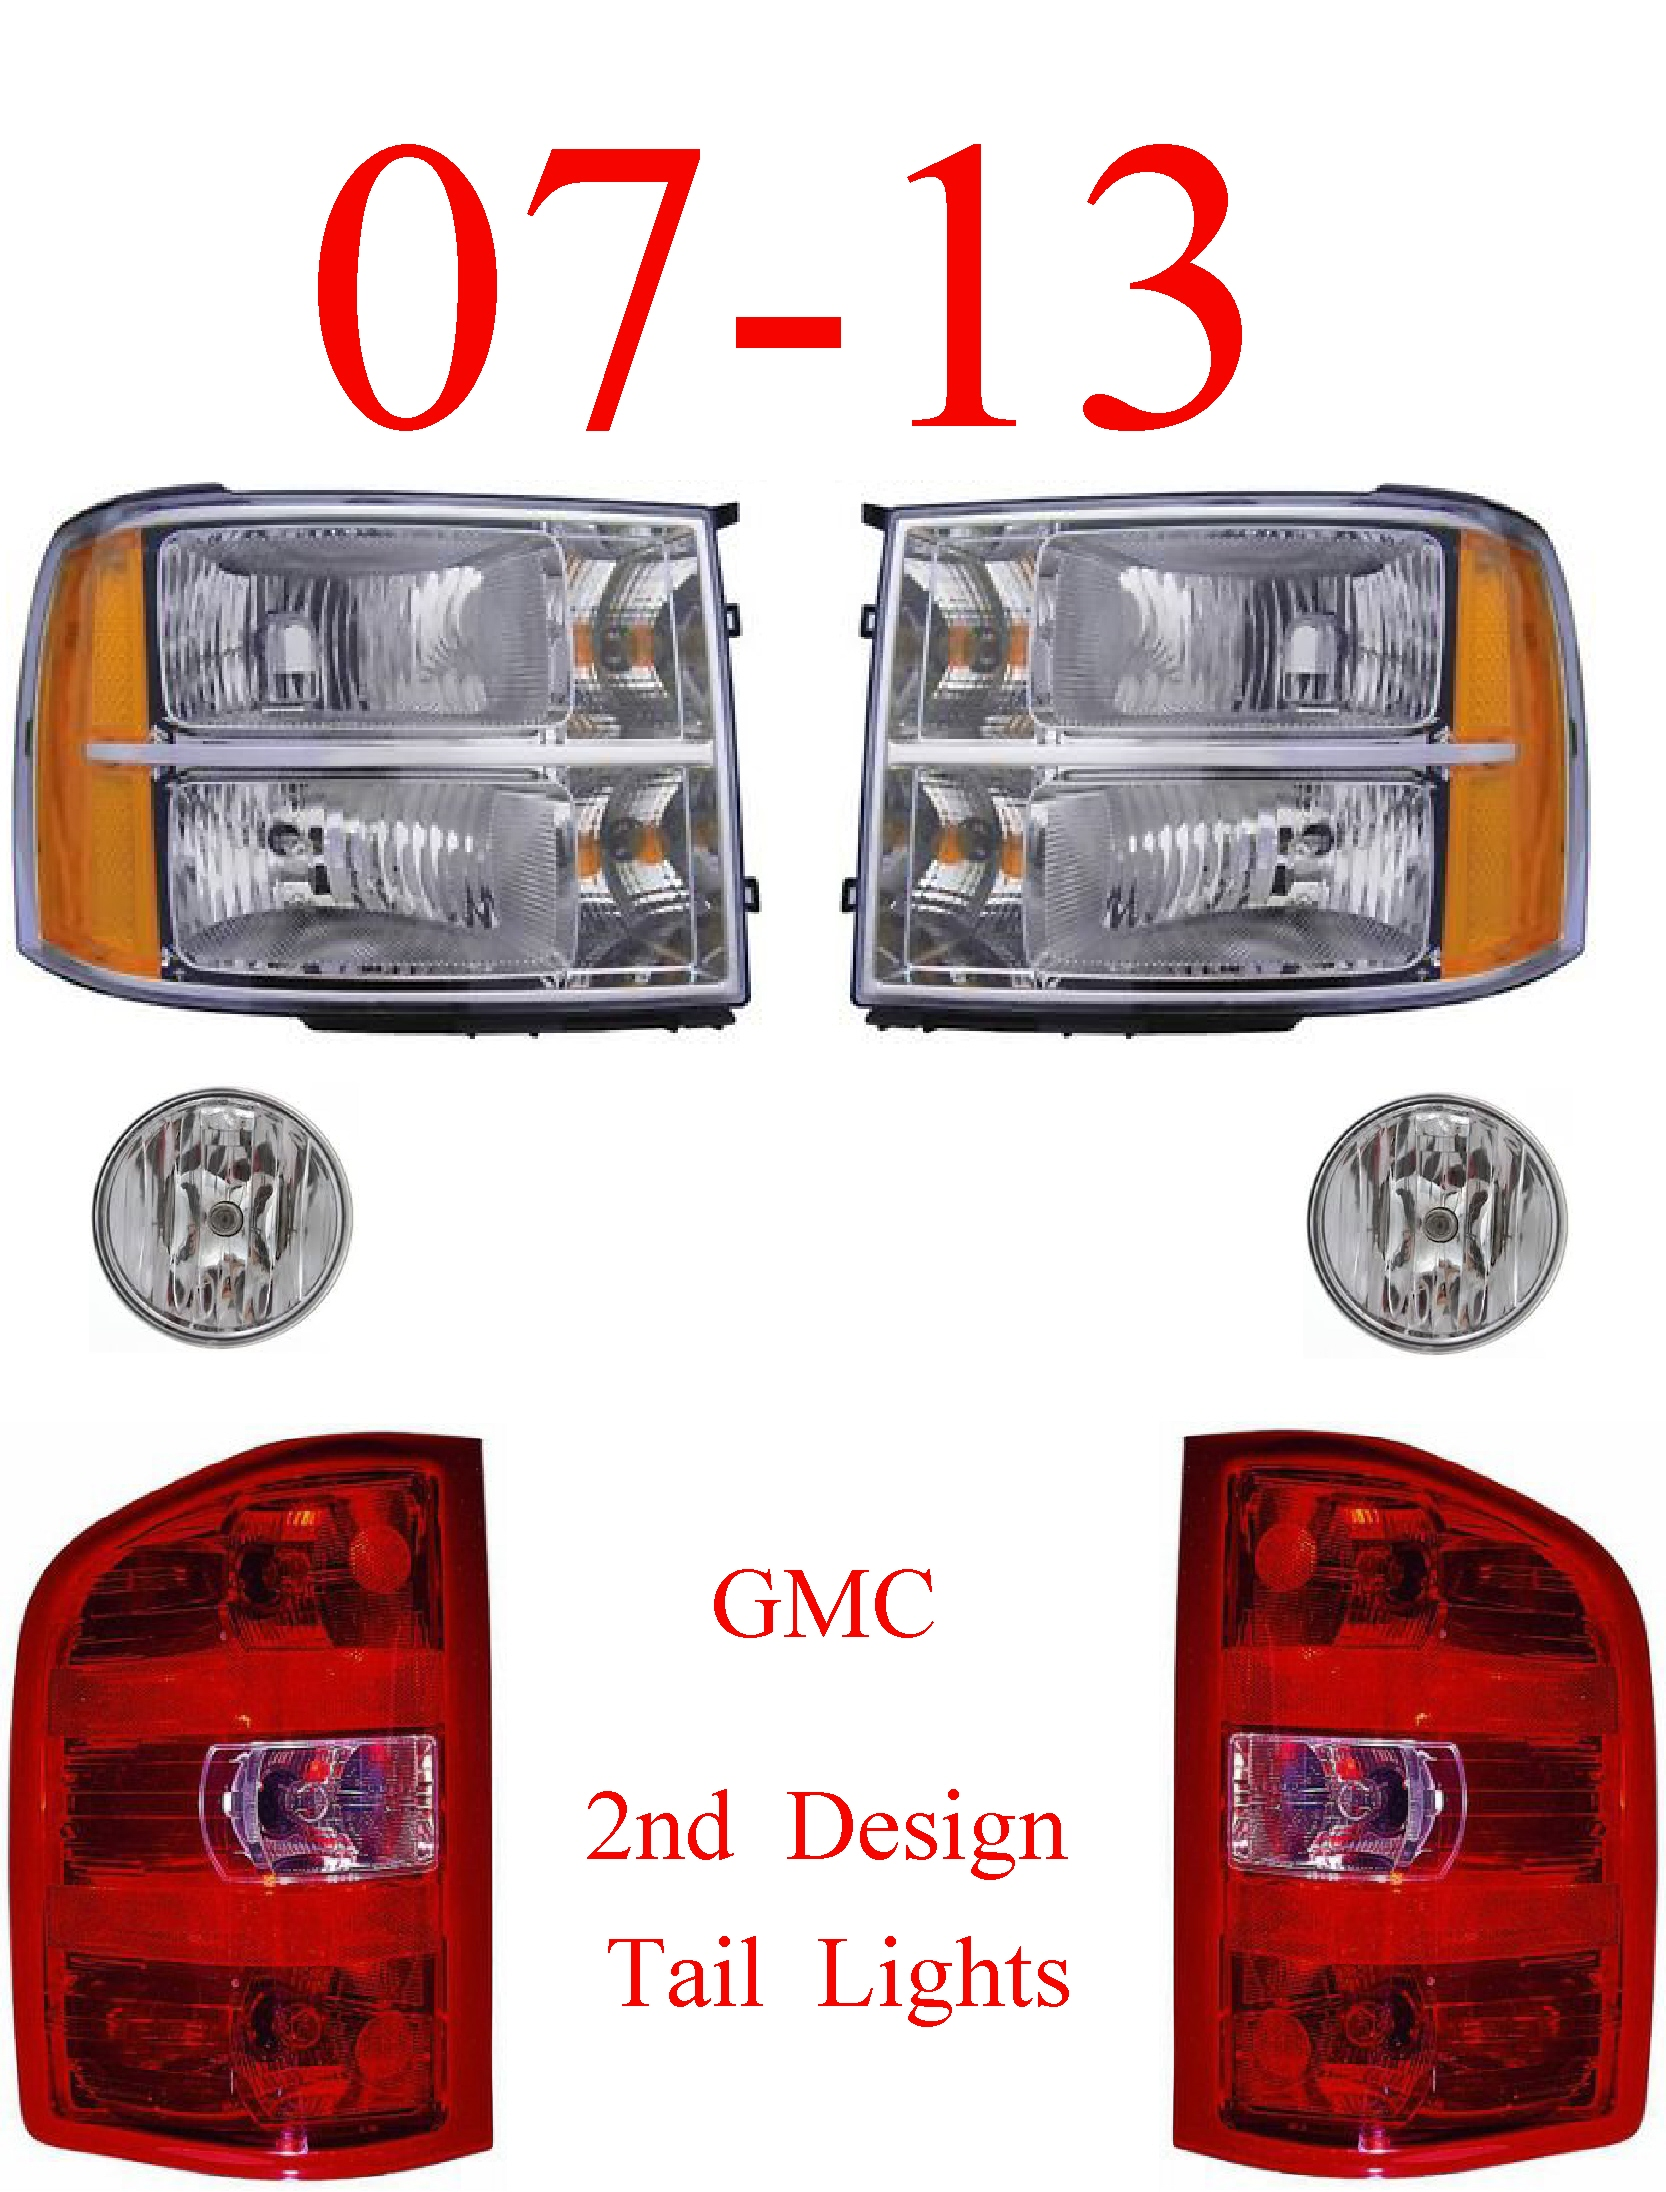 07-13 GMC 6Pc Head, Tail & Fog Light Kit, 2nd Design